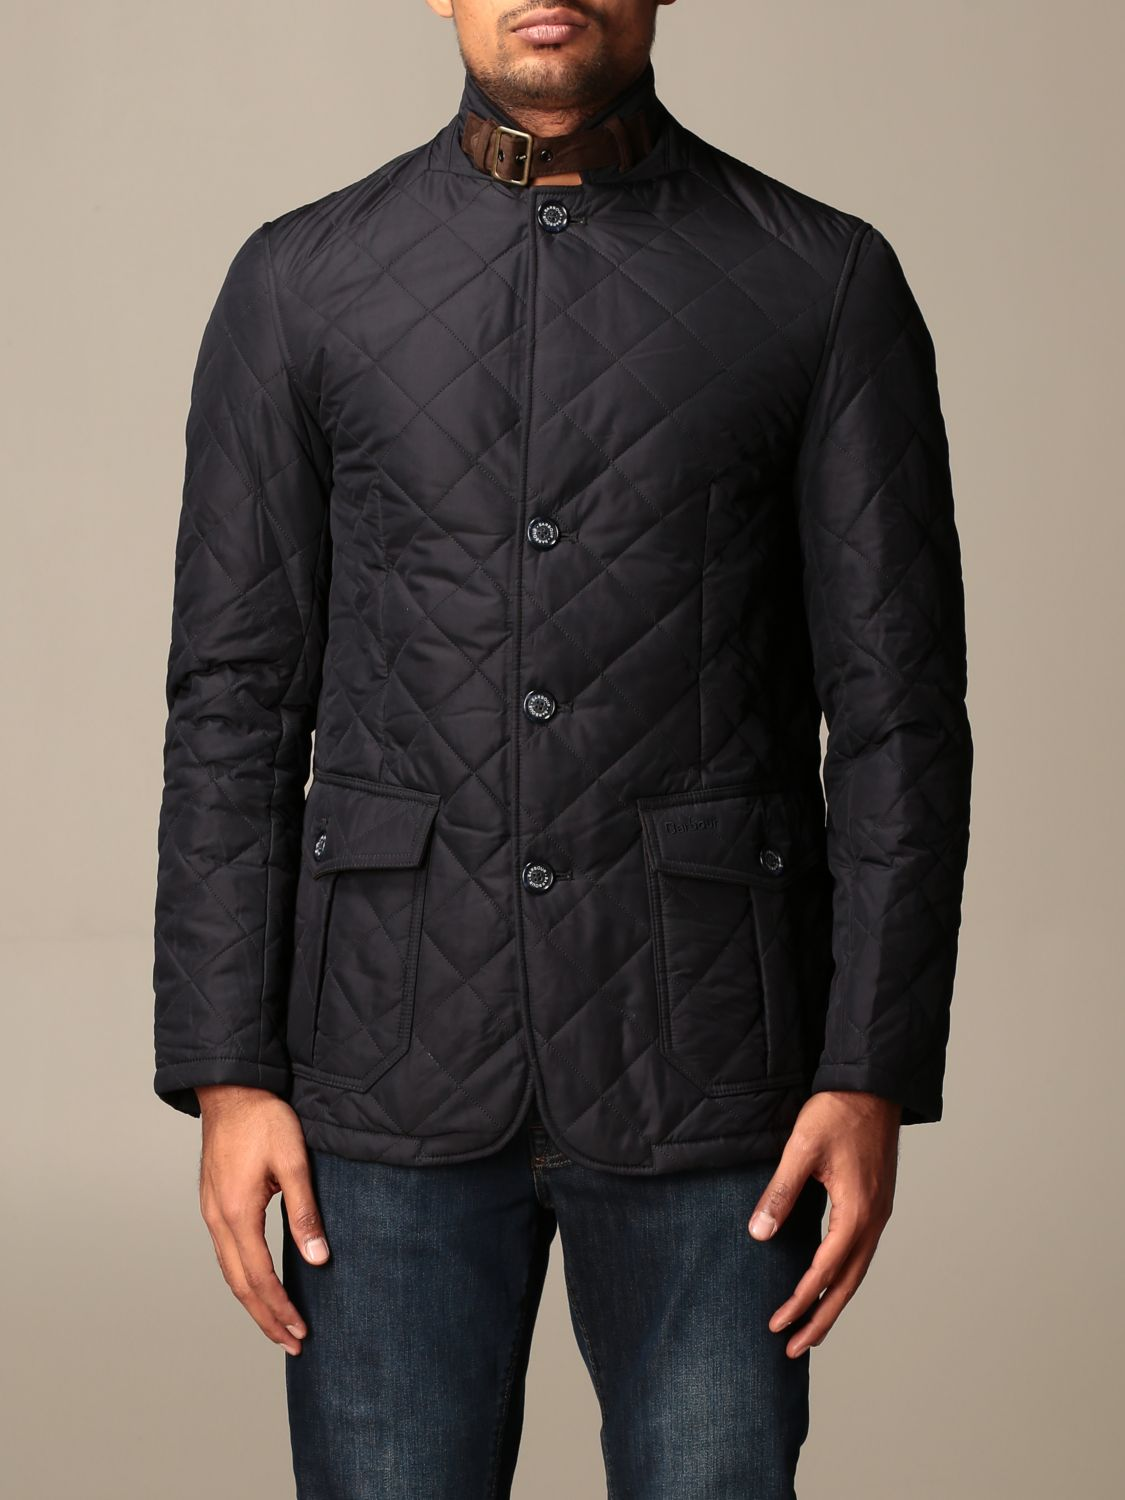 Jacket Barbour: Classic Barbour diamond quilted jacket blue 1